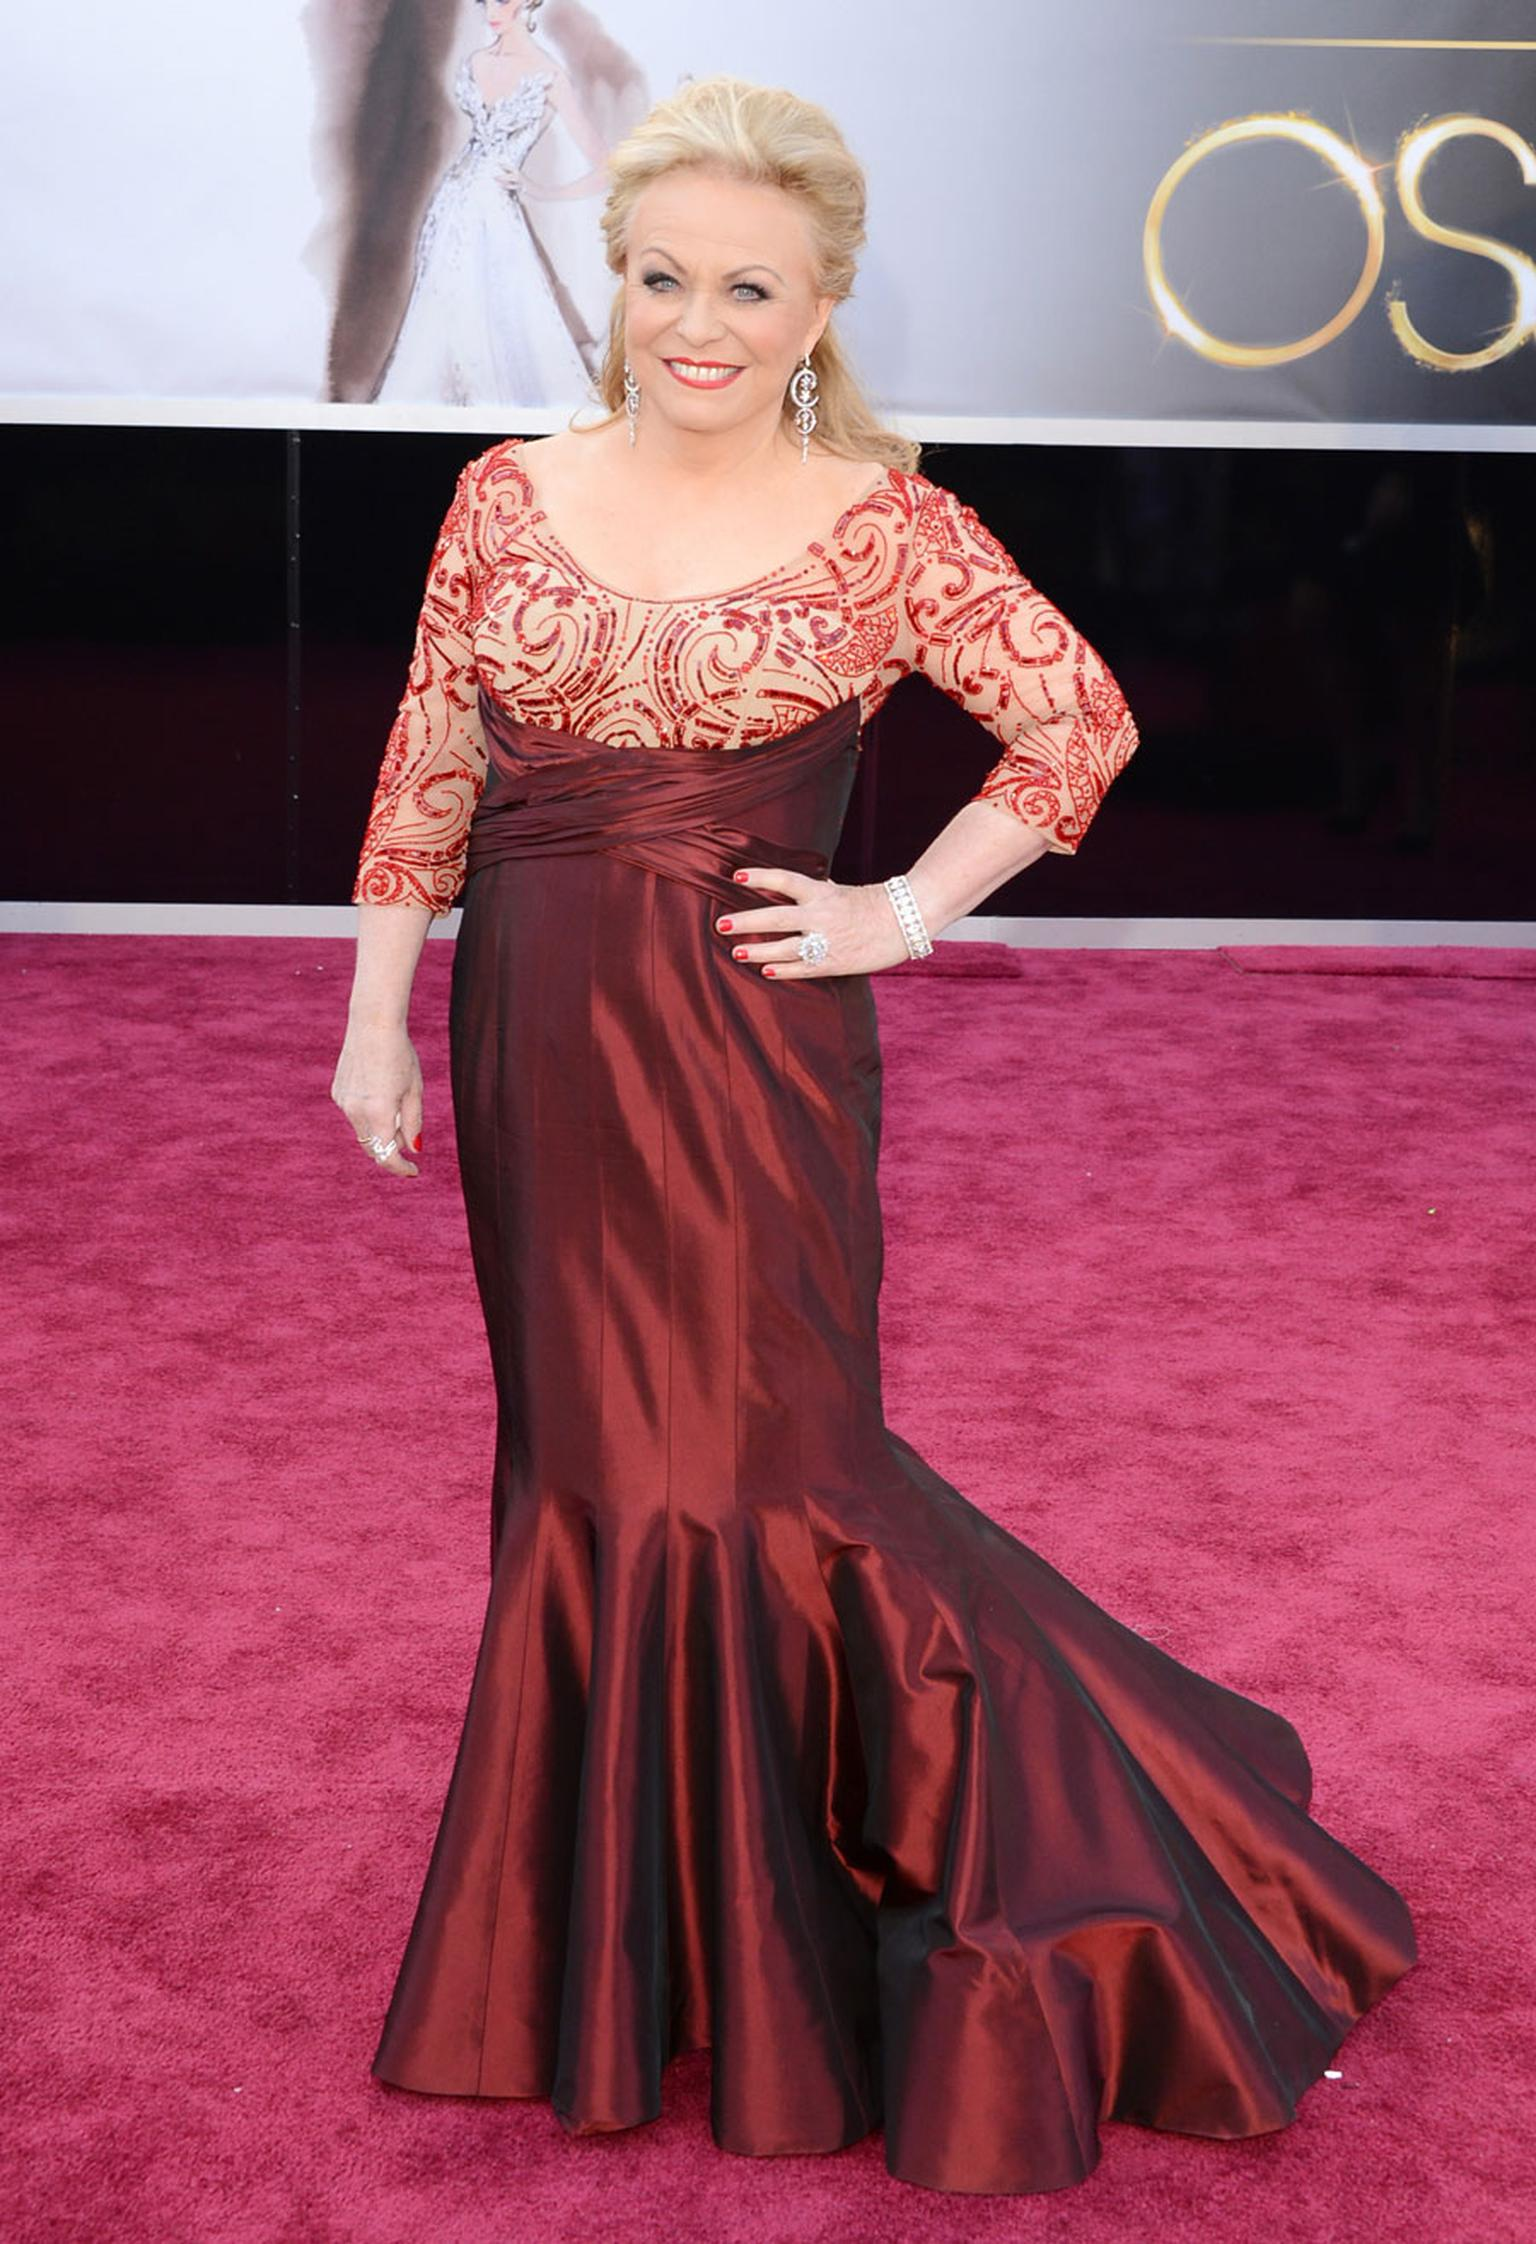 Jacki-Weaver-in-Forevermark-Diamonds-at-the-Oscars